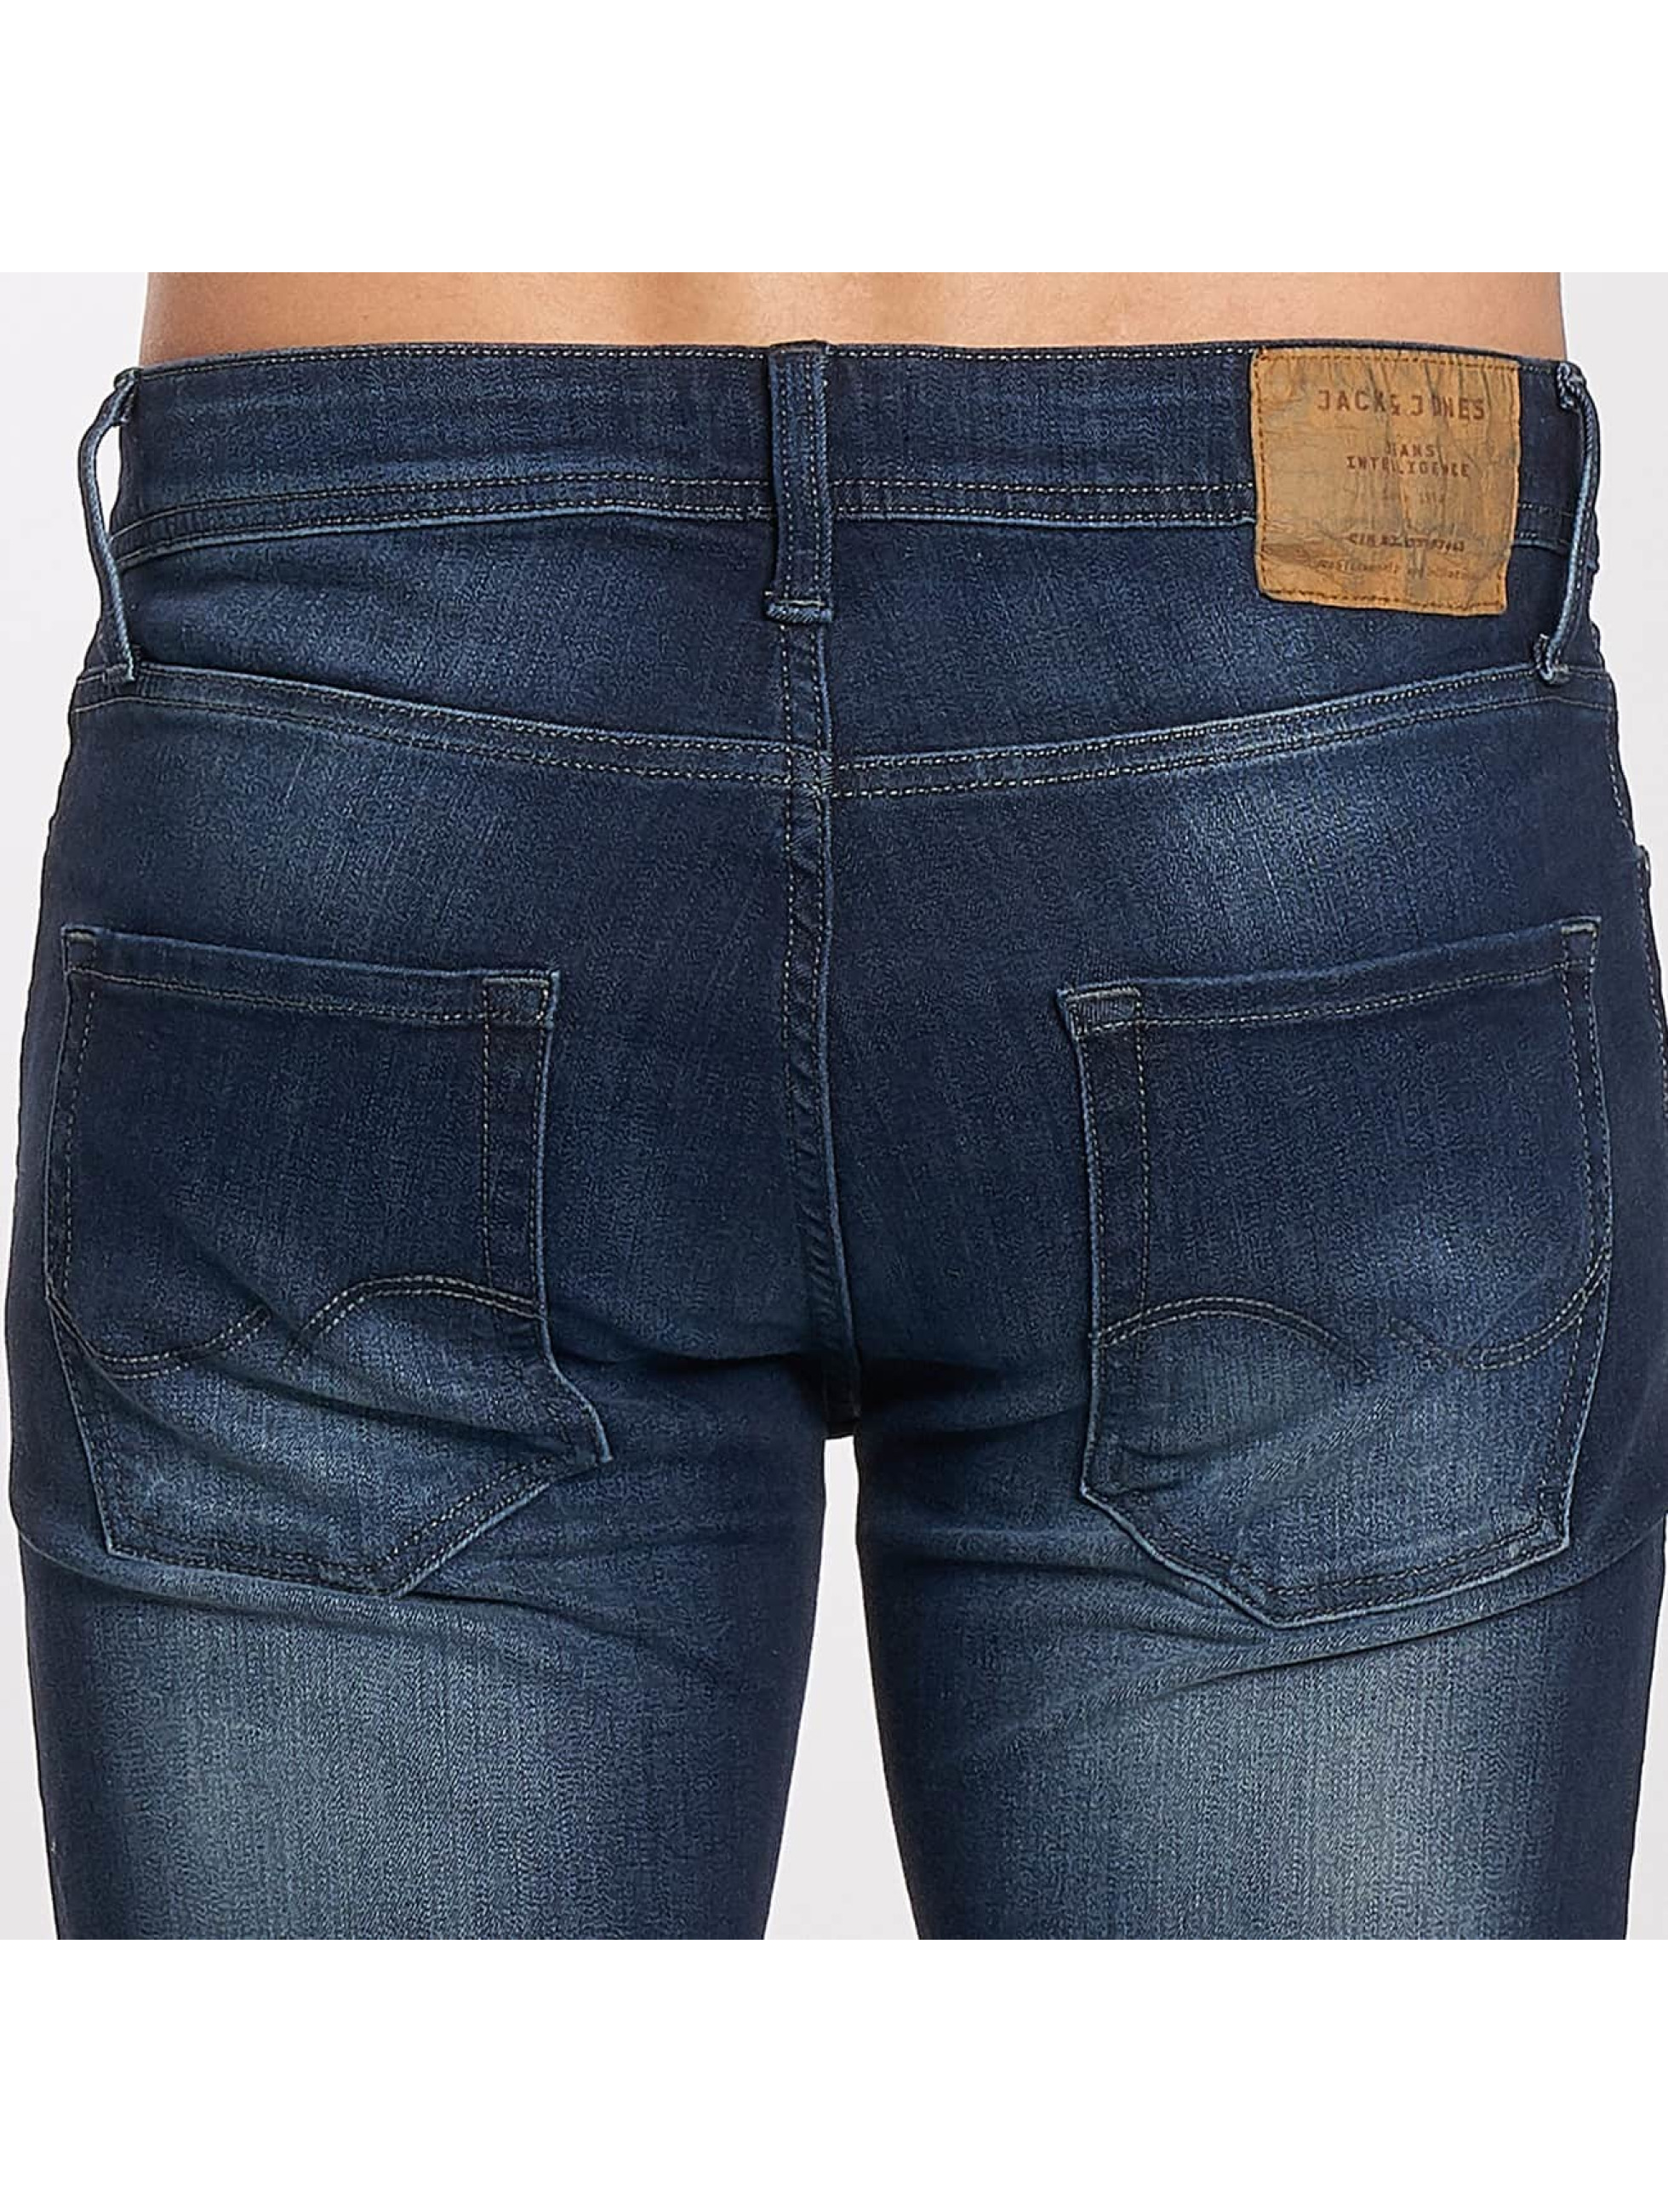 Jack & Jones Slim Fit Jeans jjiTim jjOriginal modrá